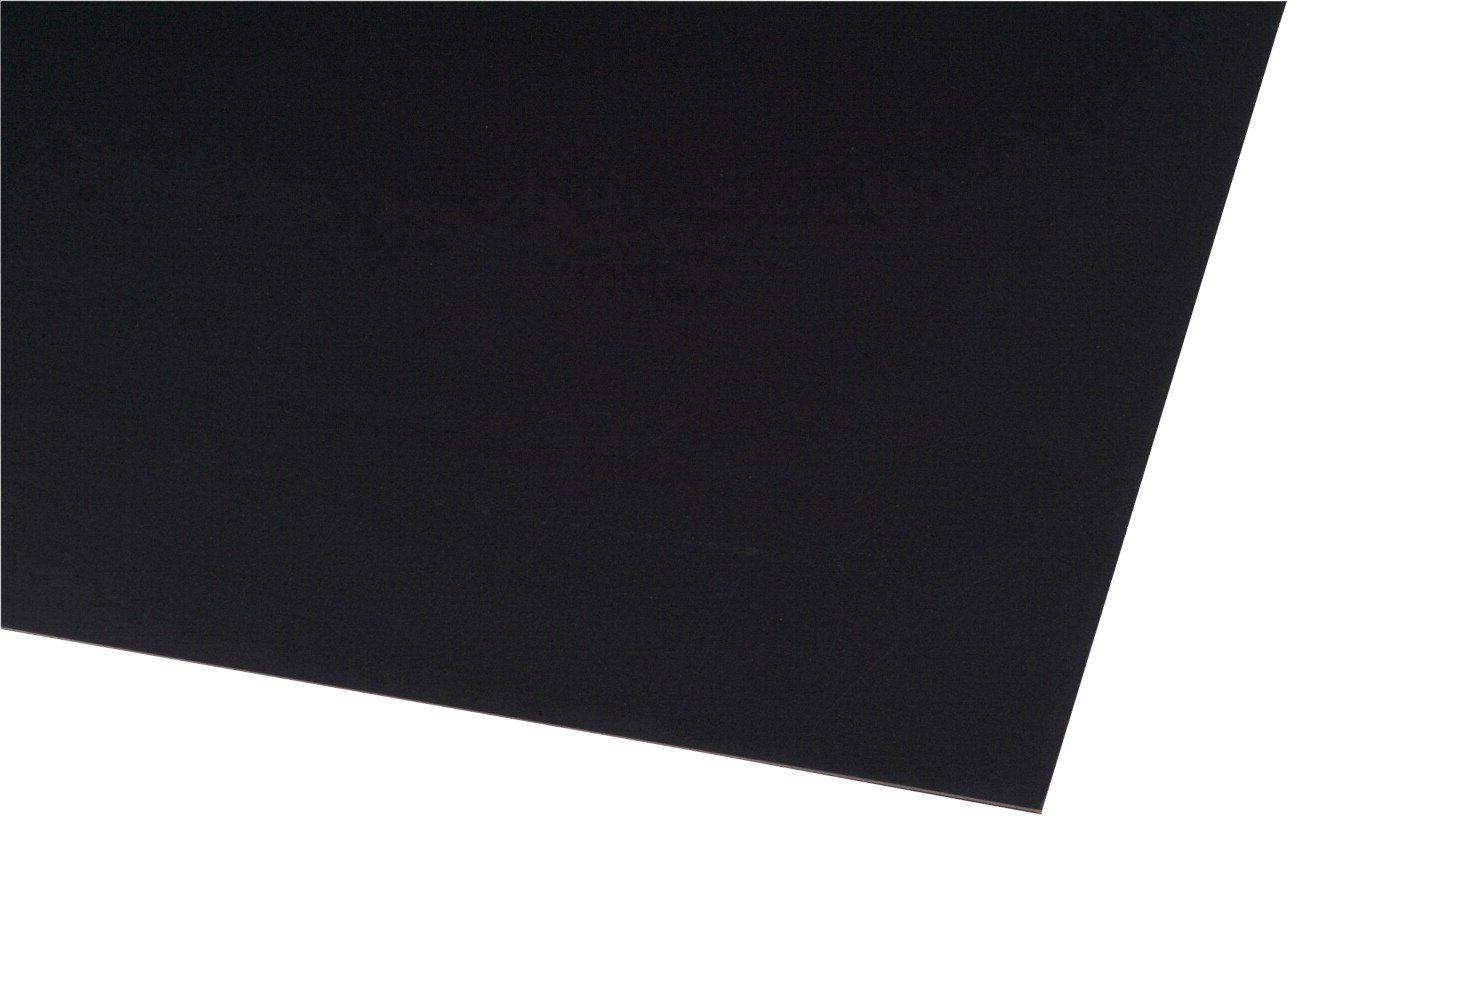 Crescent Melton Mounting Board, 28 x 44 Inches, Black, Pack of 10 by Crescent